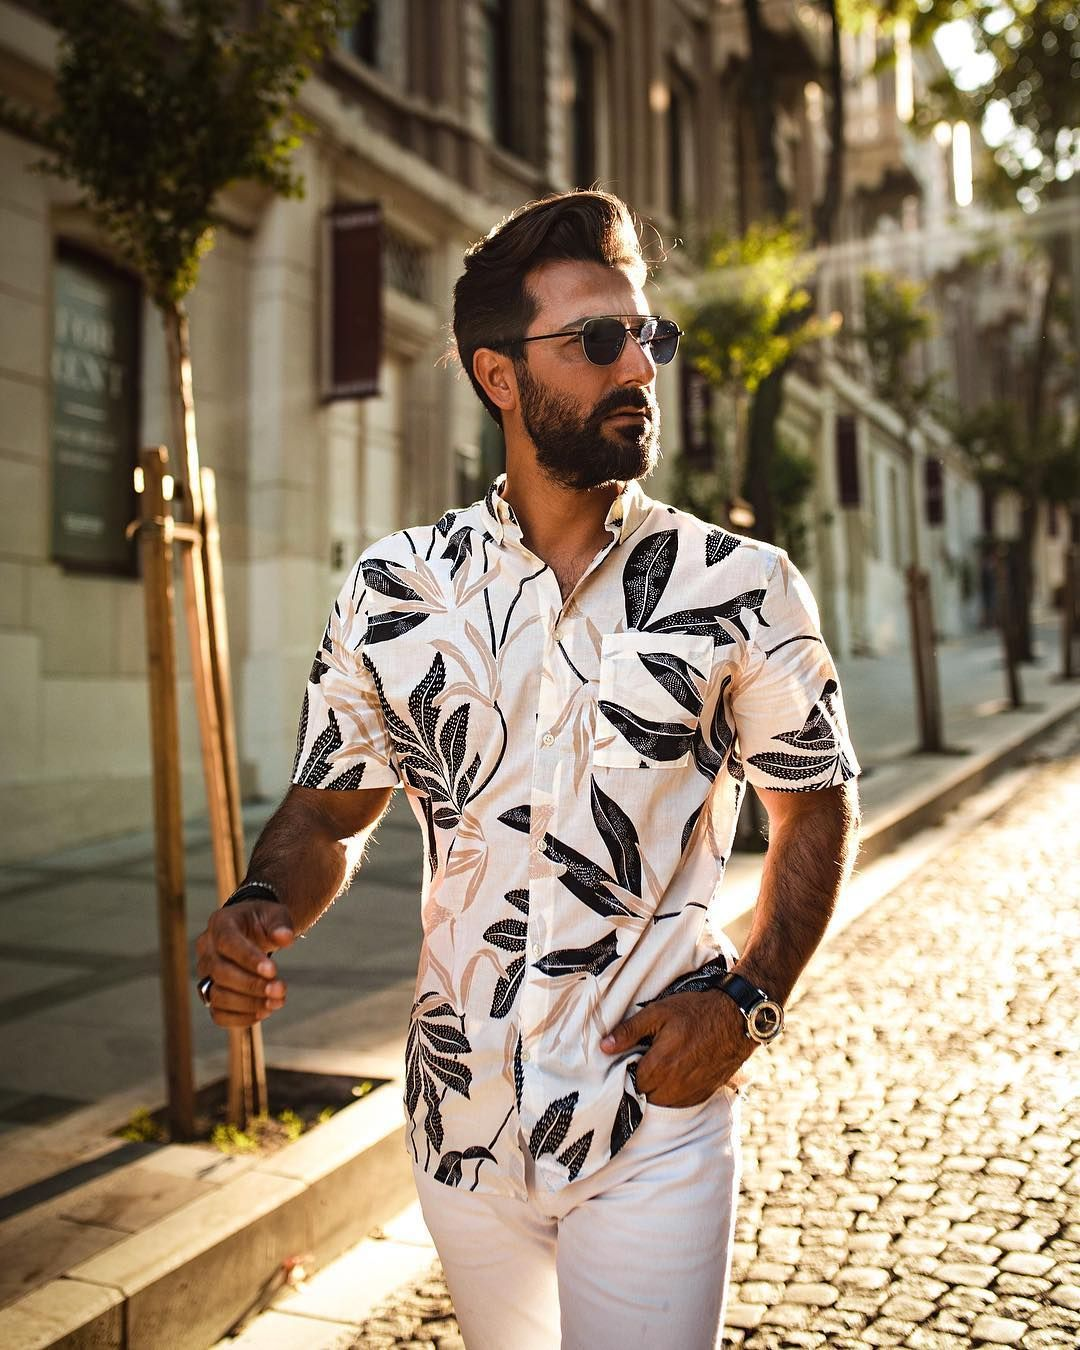 57bf28c3a88 Love this summer outfit and love the photography even more! Photo from   senorkaya  suumerstyle  summeroutfits  shorts  menswear  menstyle   mensfashion ...